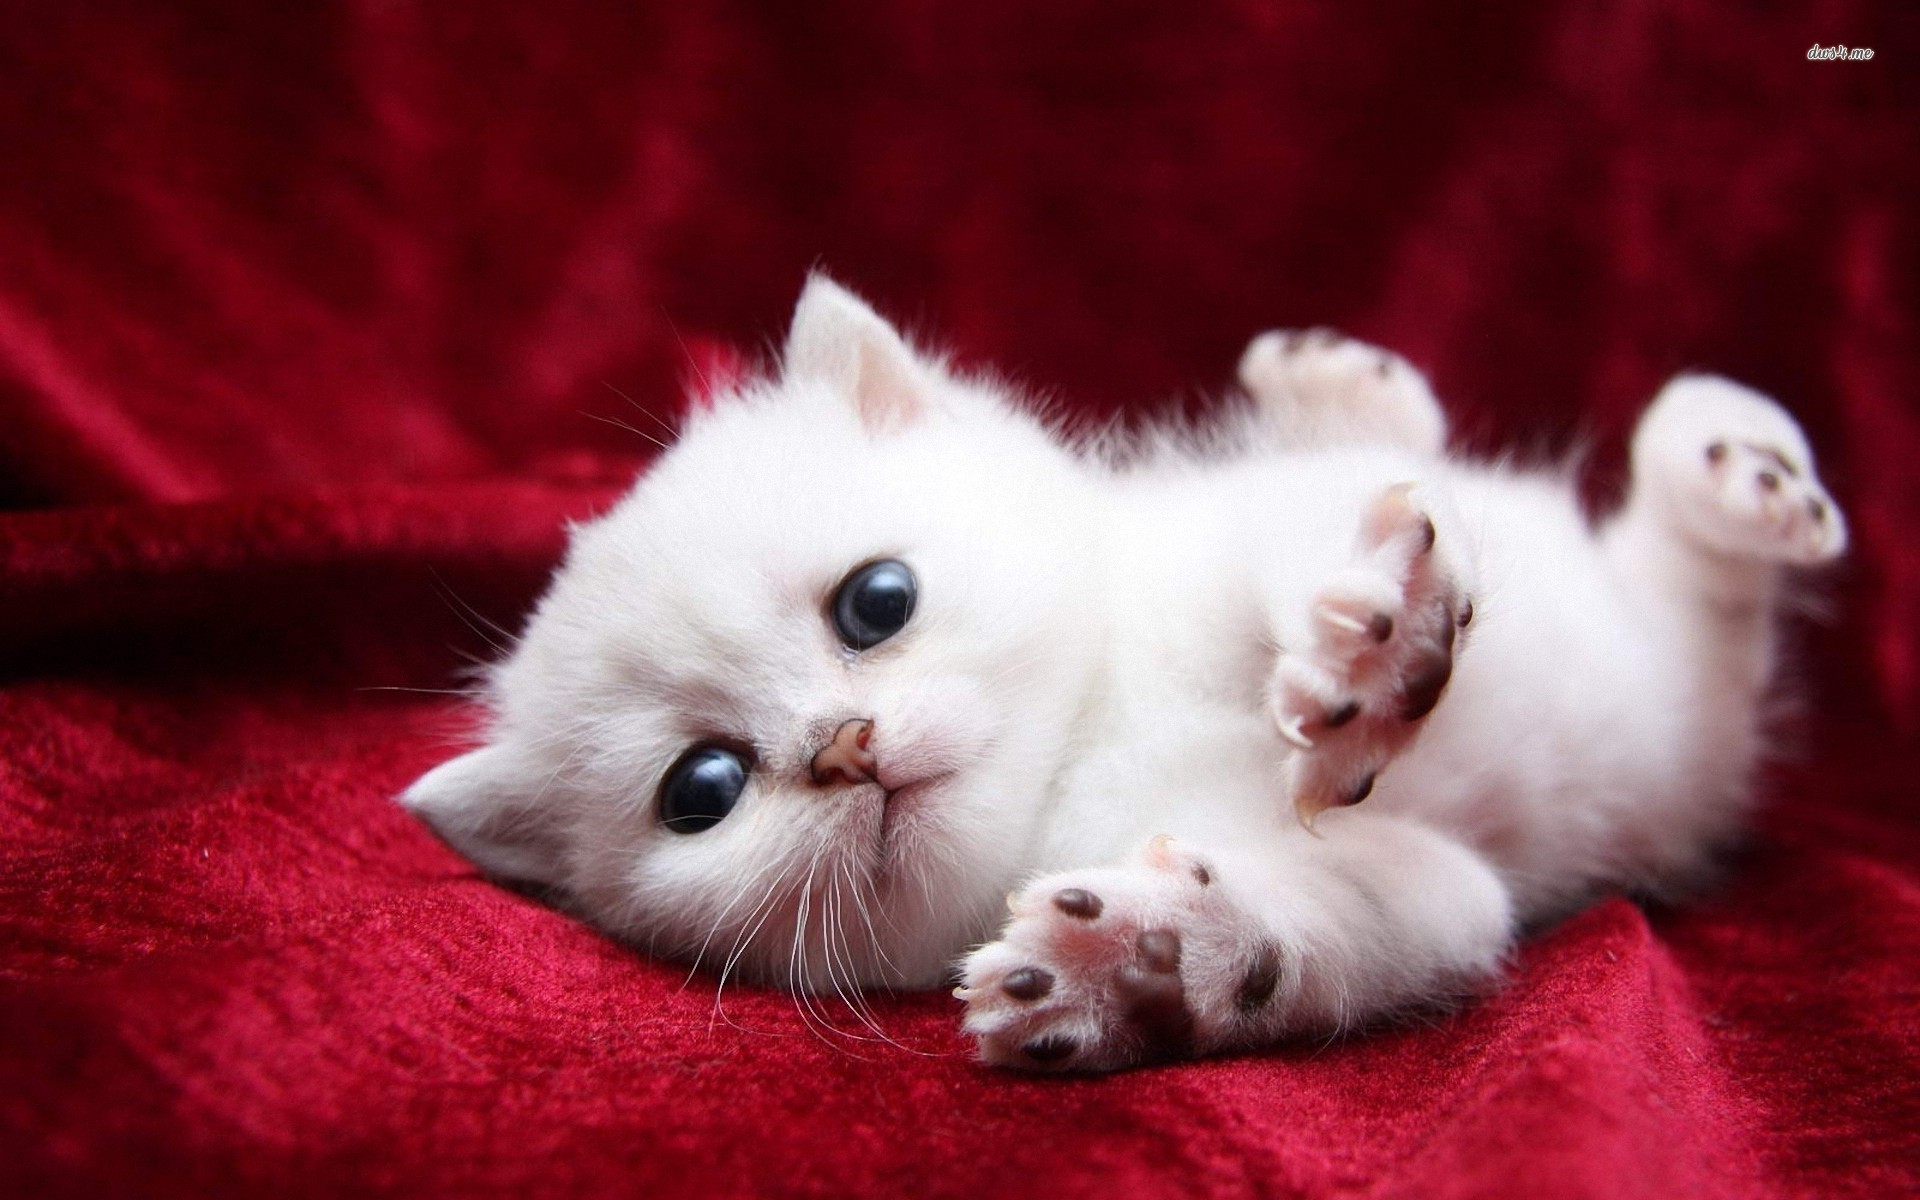 1920x1200 Cute Cats and Kittens Wallpaper - WallpaperSafari